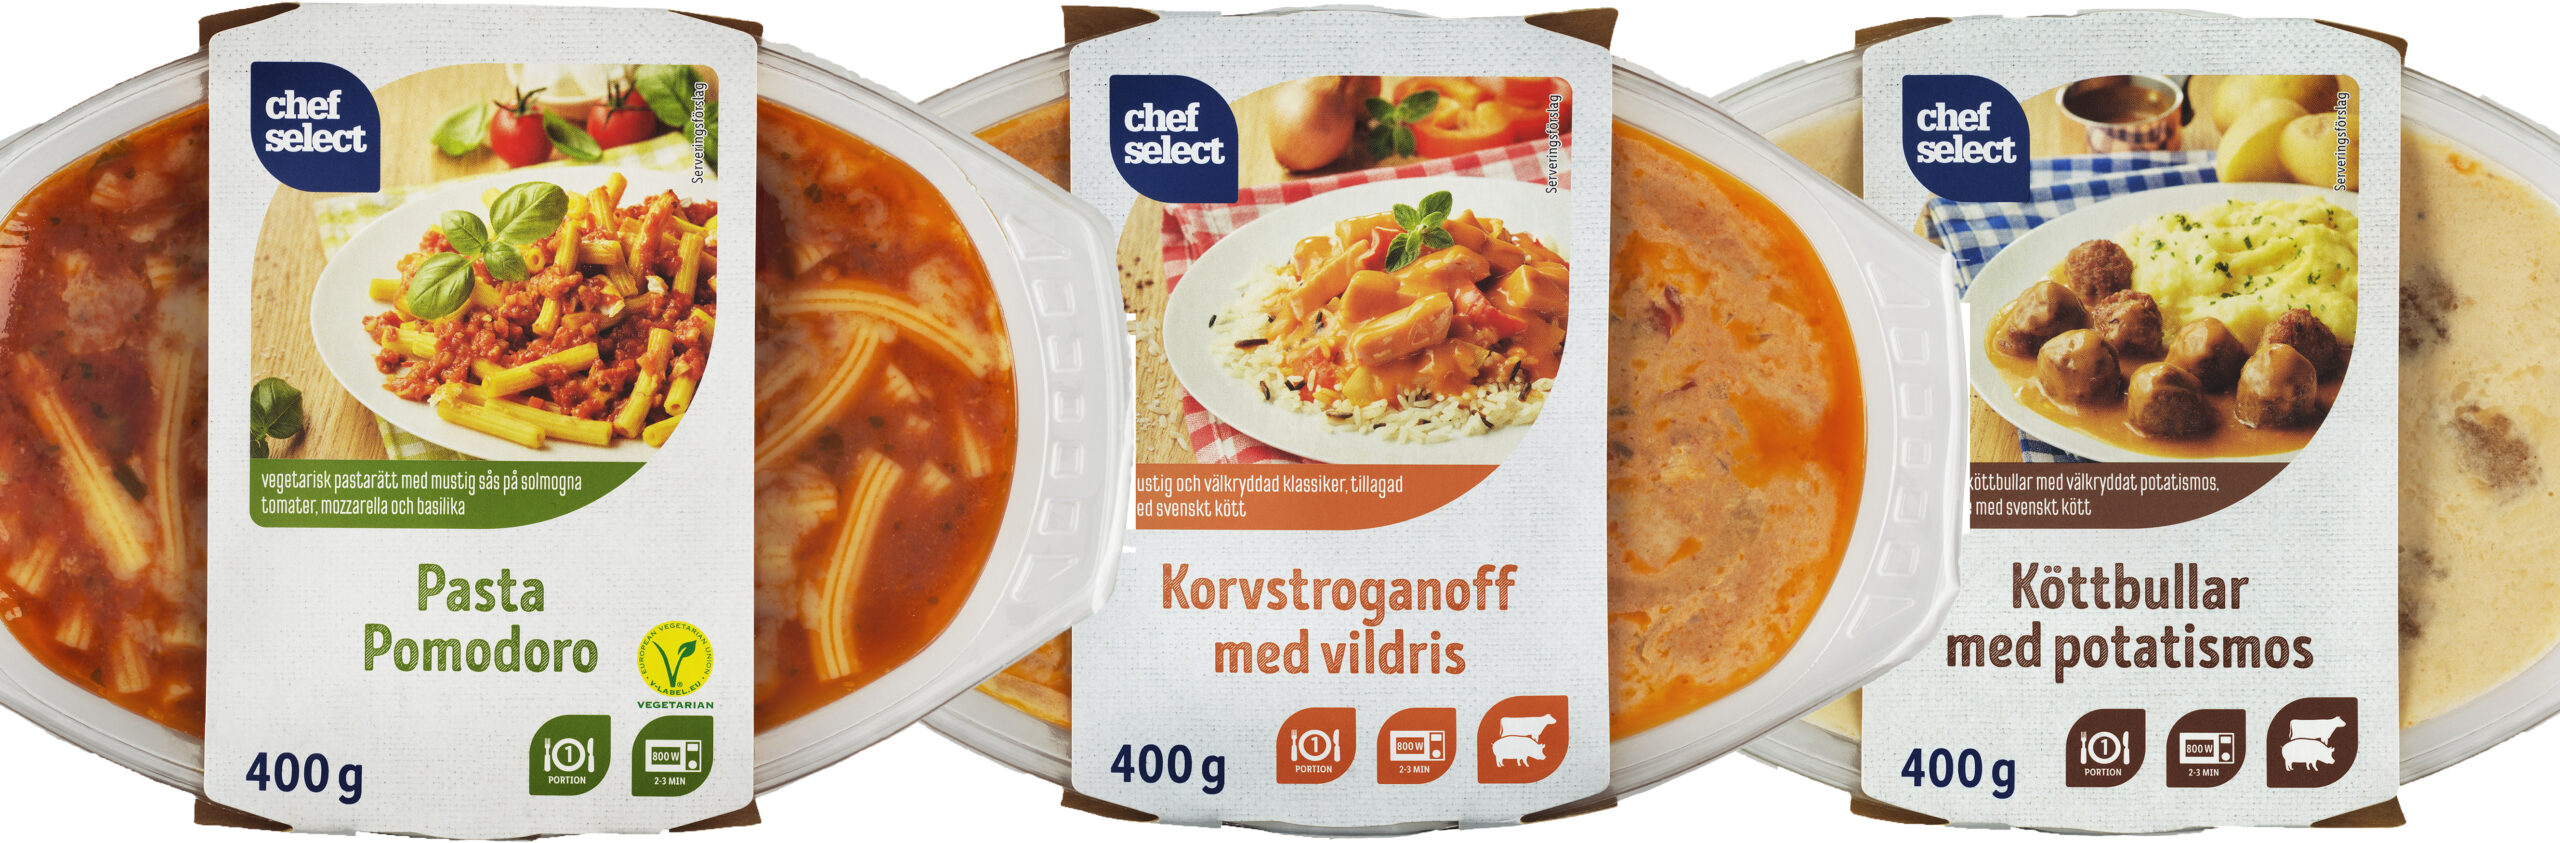 Lidl launches new ready meals